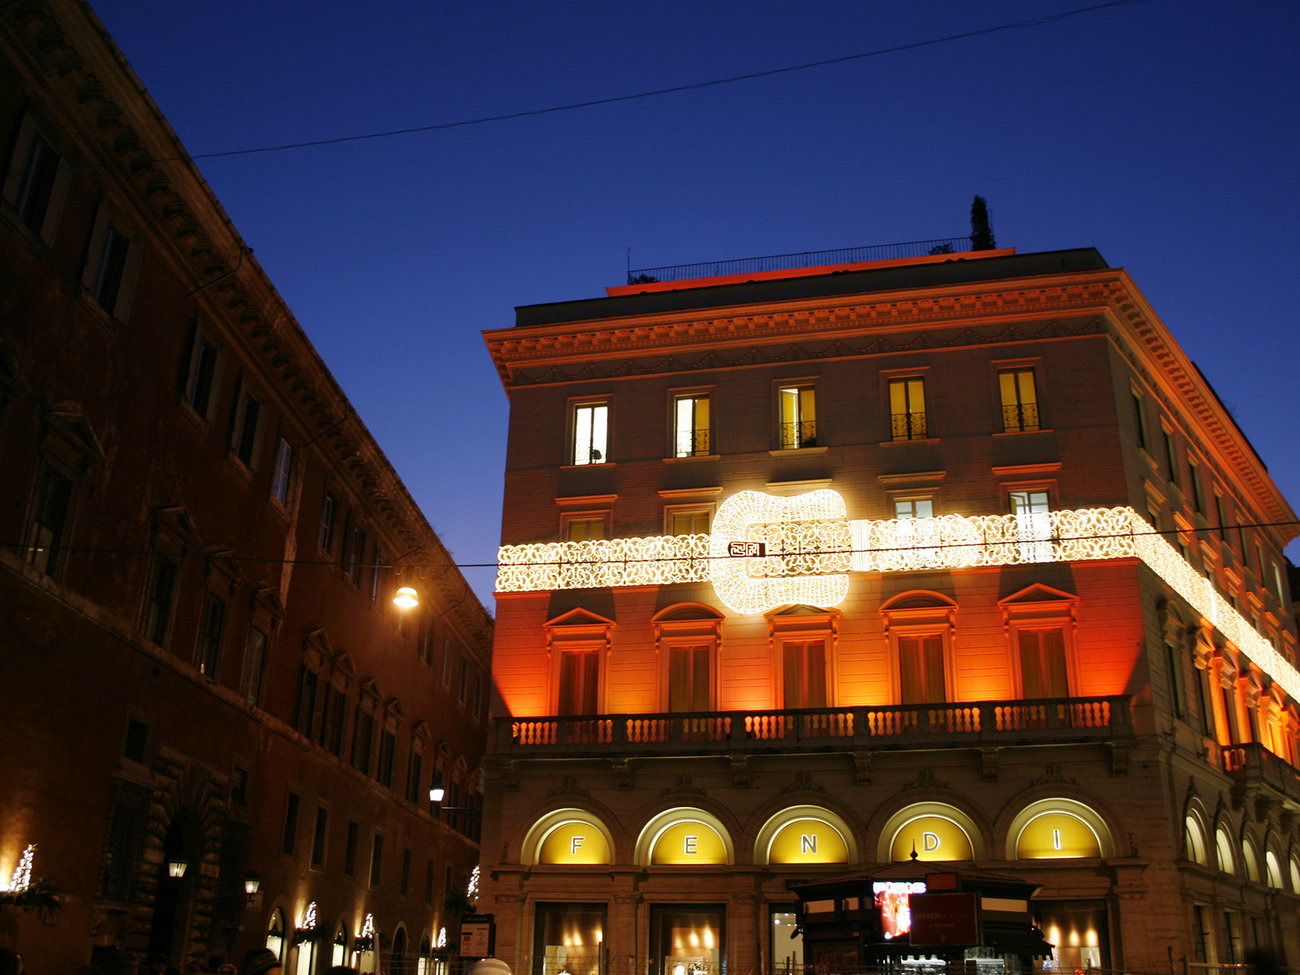 Fendi Fashion Store in Rome